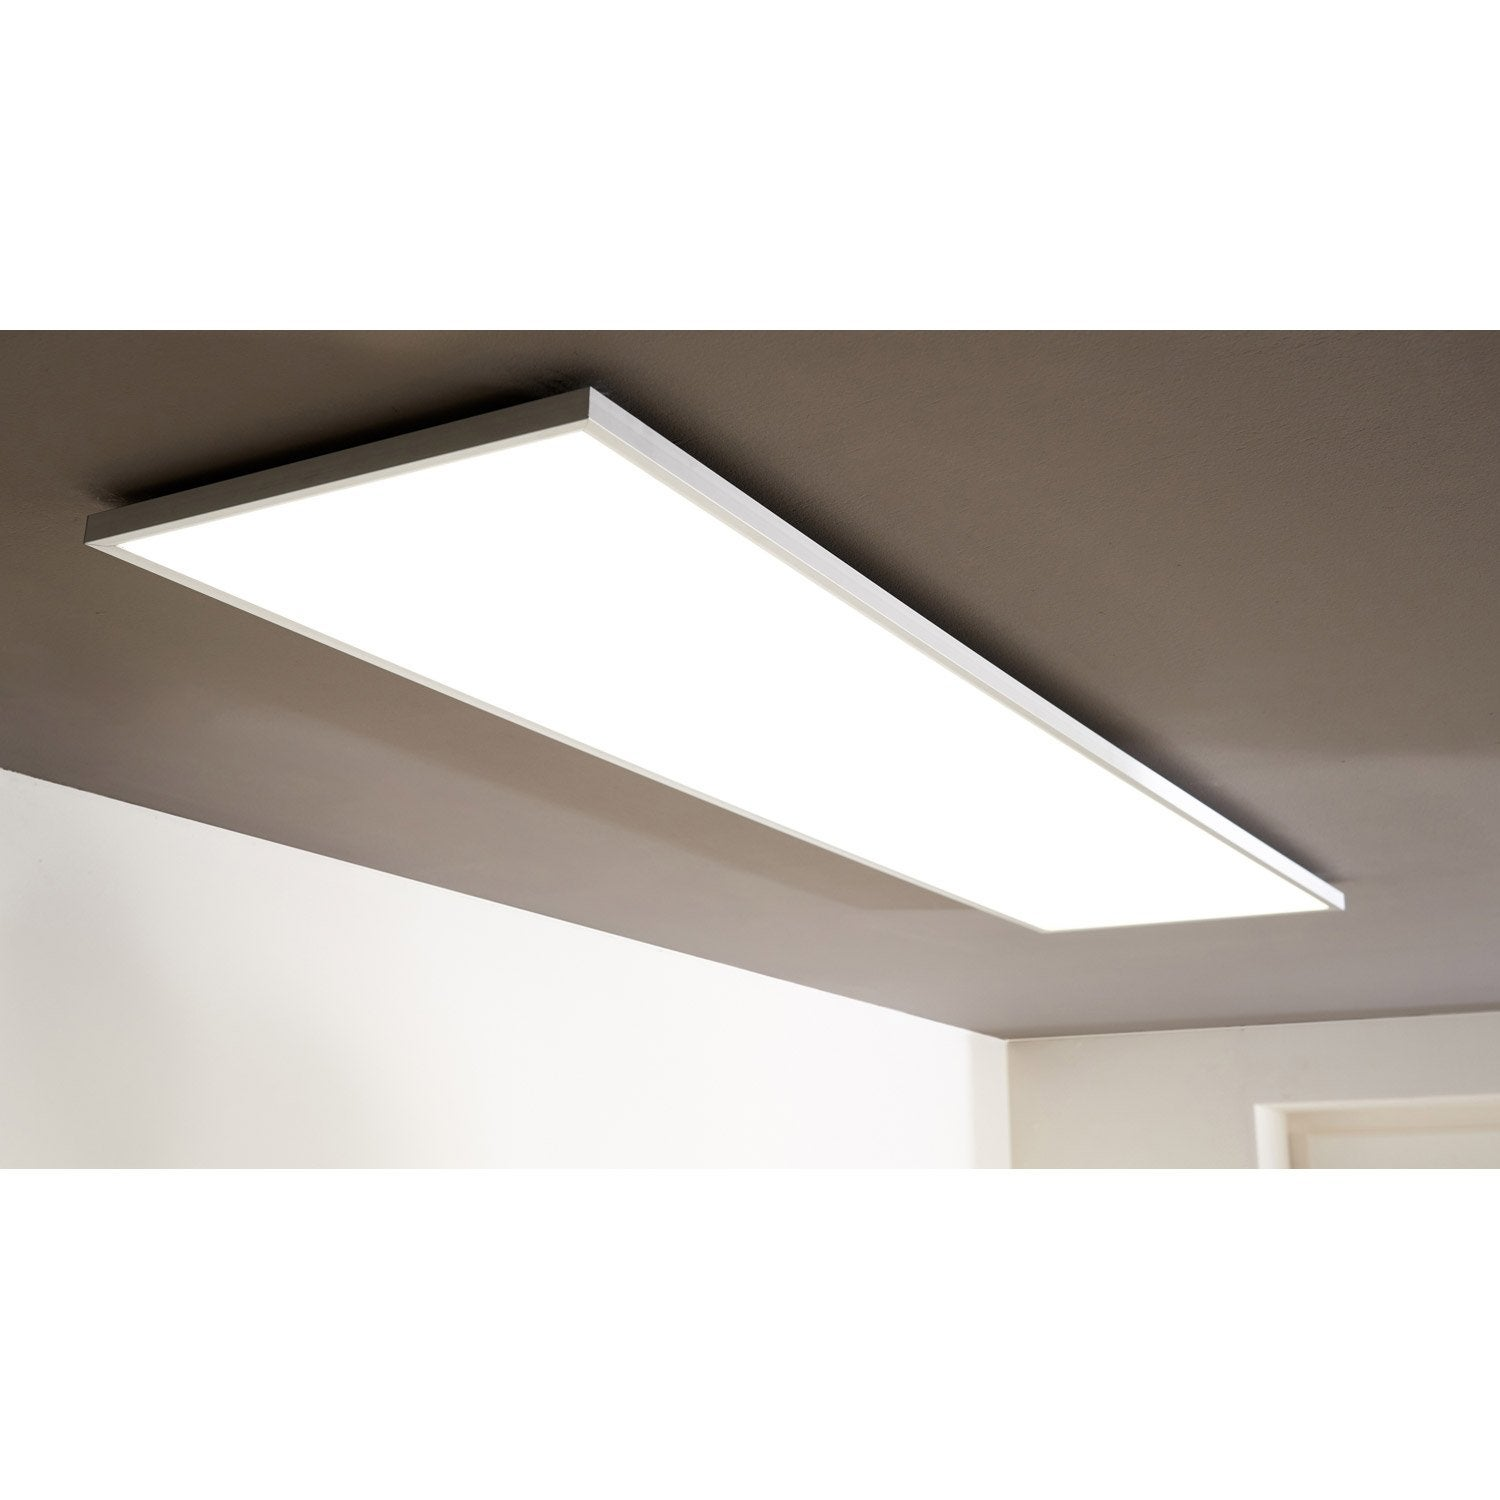 panneau led int gr e gdansk inspire rectangle 120 x 30 cm